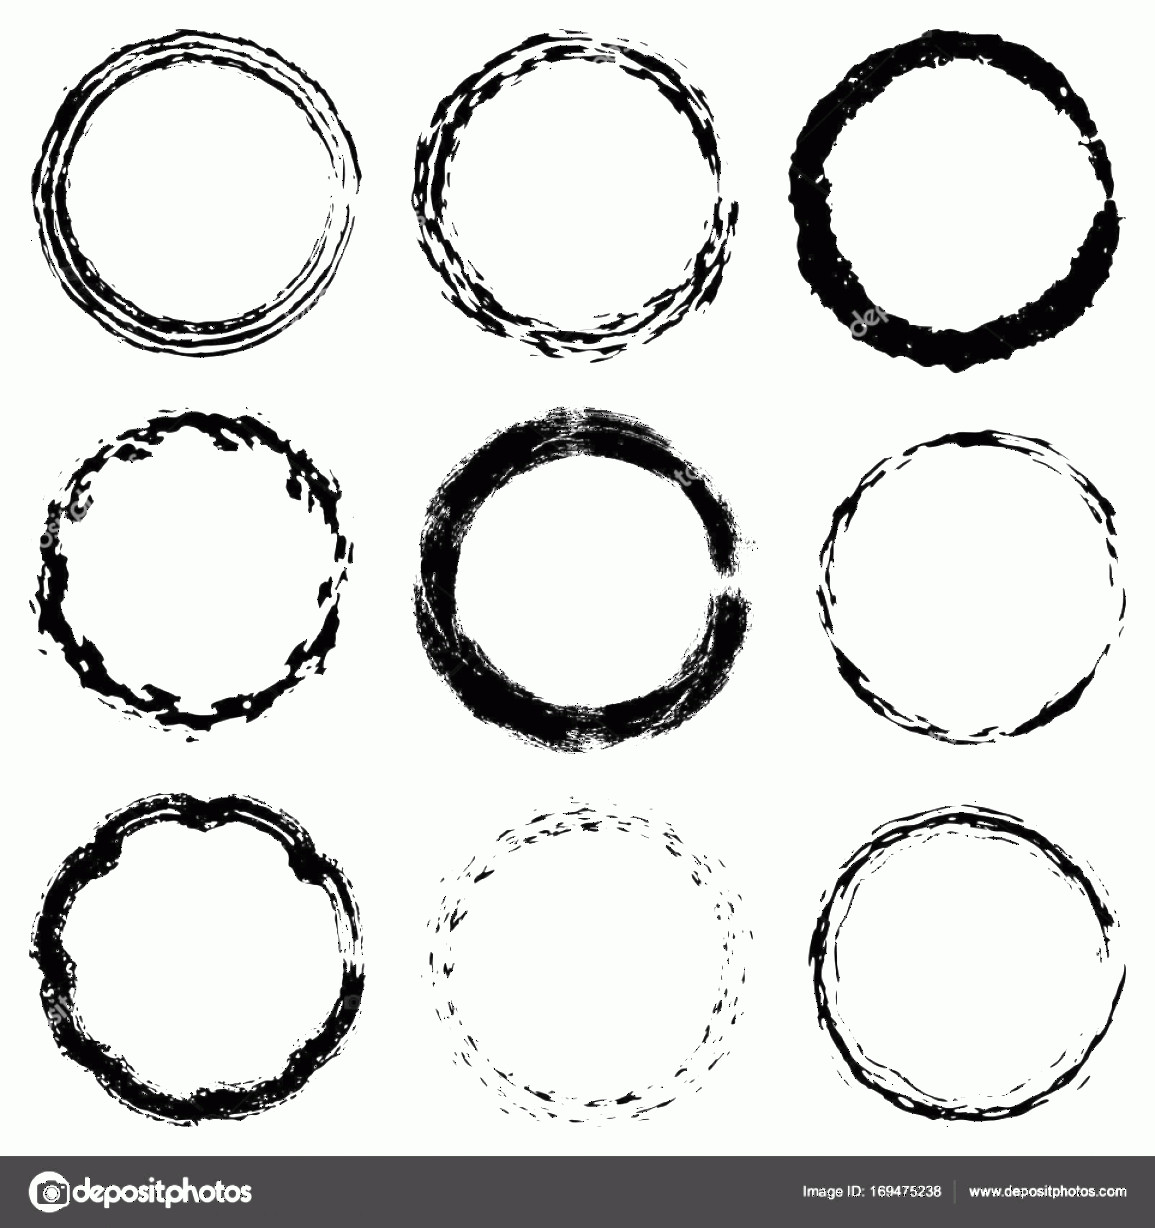 Distressed Border Circle Vector: Stock Illustration Circular Frame Textures Set